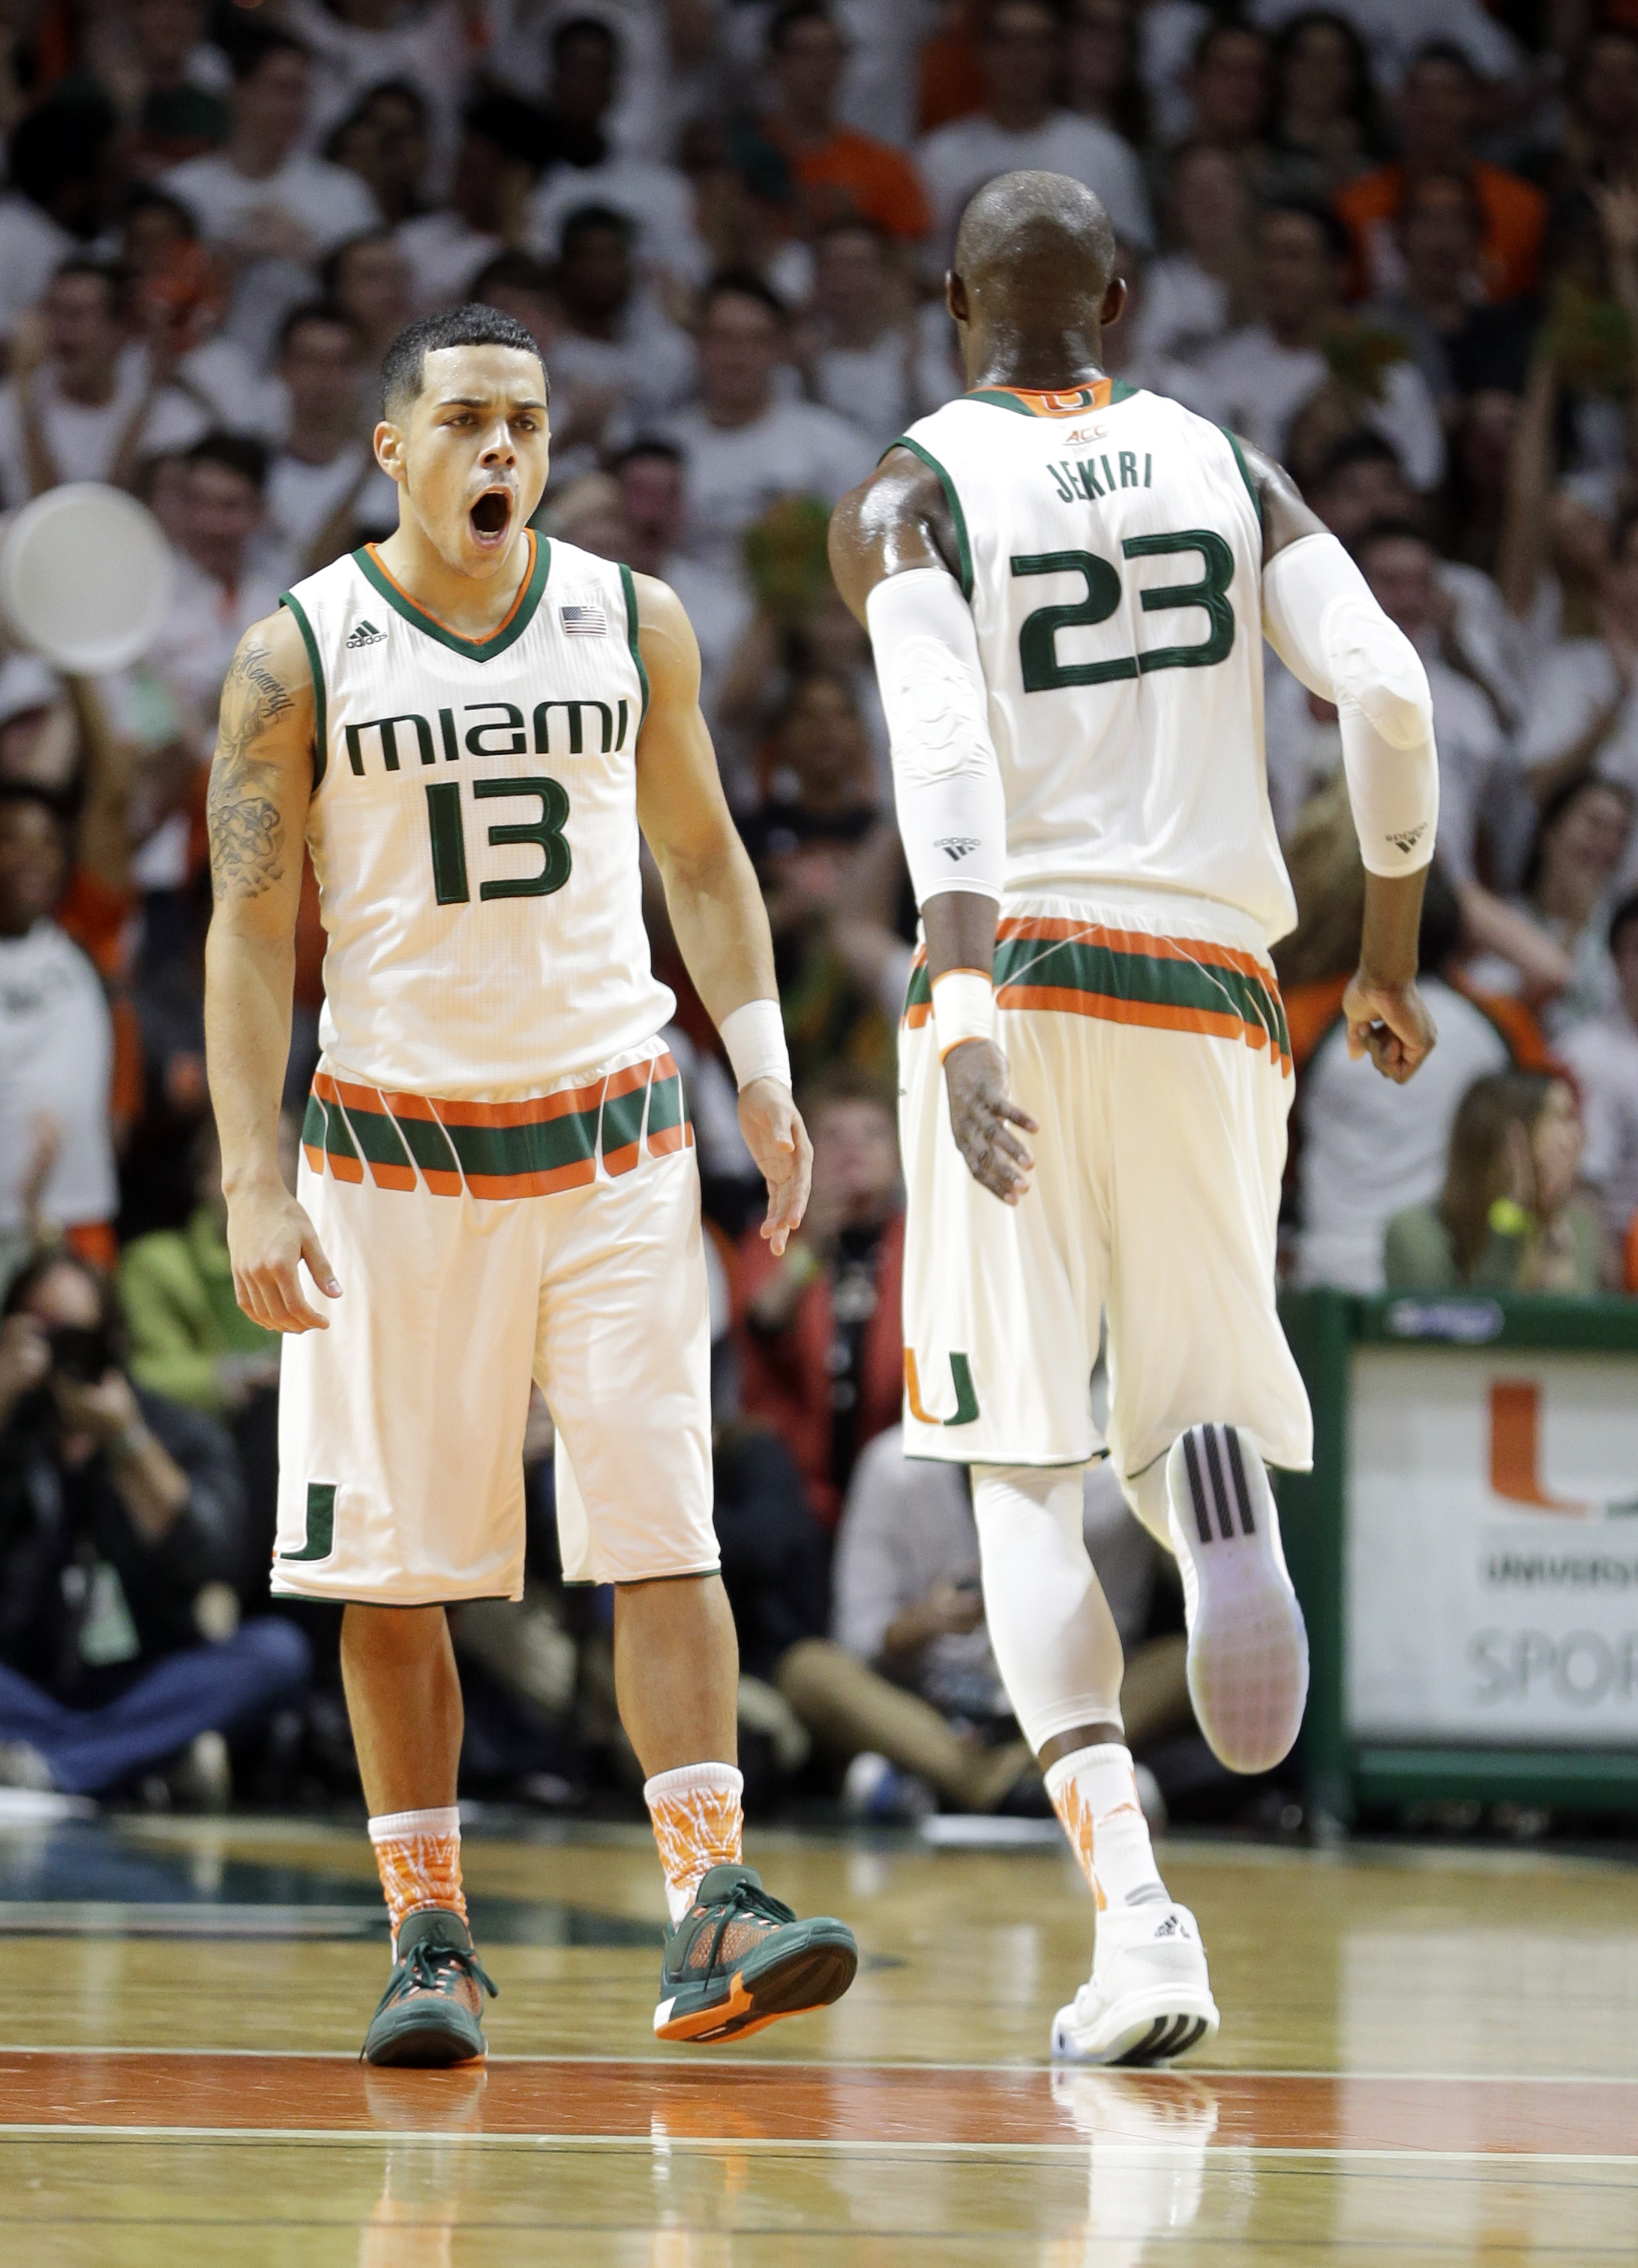 Miami guard Angel Rodriguez (13) celebrates after scoring a three-pointer against Duke  during the first half of an NCAA college basketball game, Monday, Jan. 25, 2016, in Coral Gables, Fla. (AP Photo/Alan Diaz)